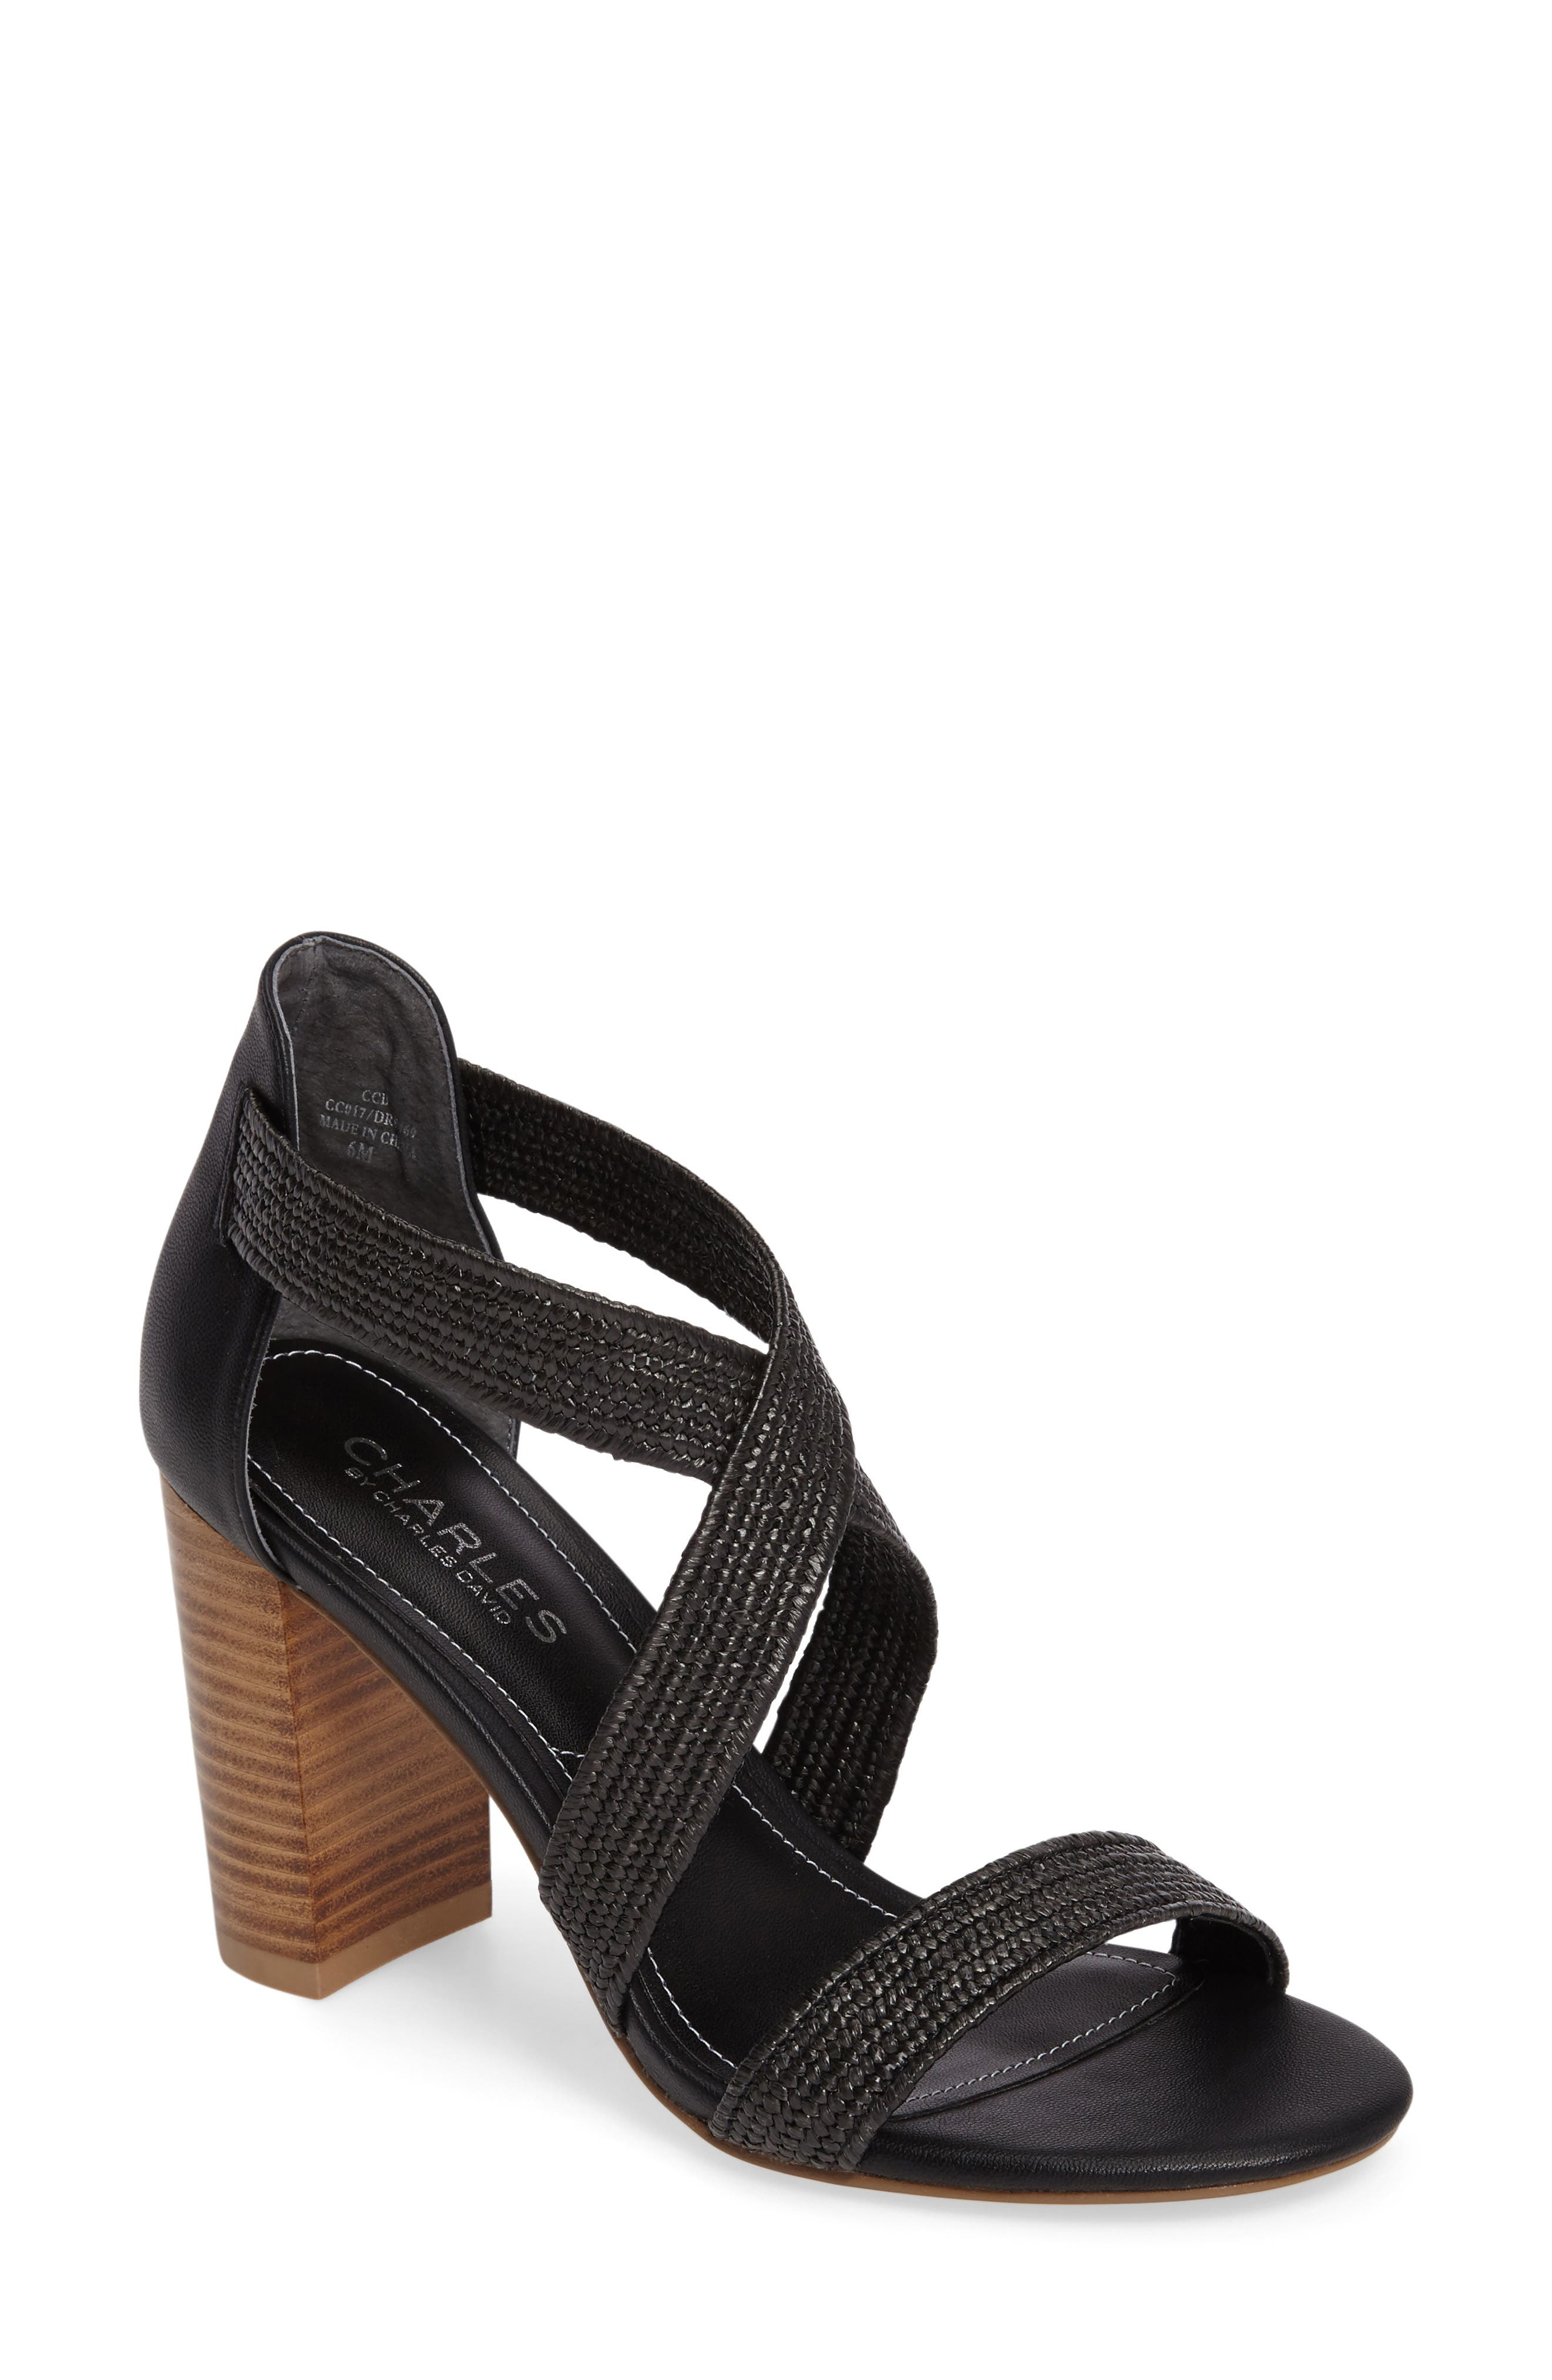 Emily Strappy Sandal,                             Main thumbnail 1, color,